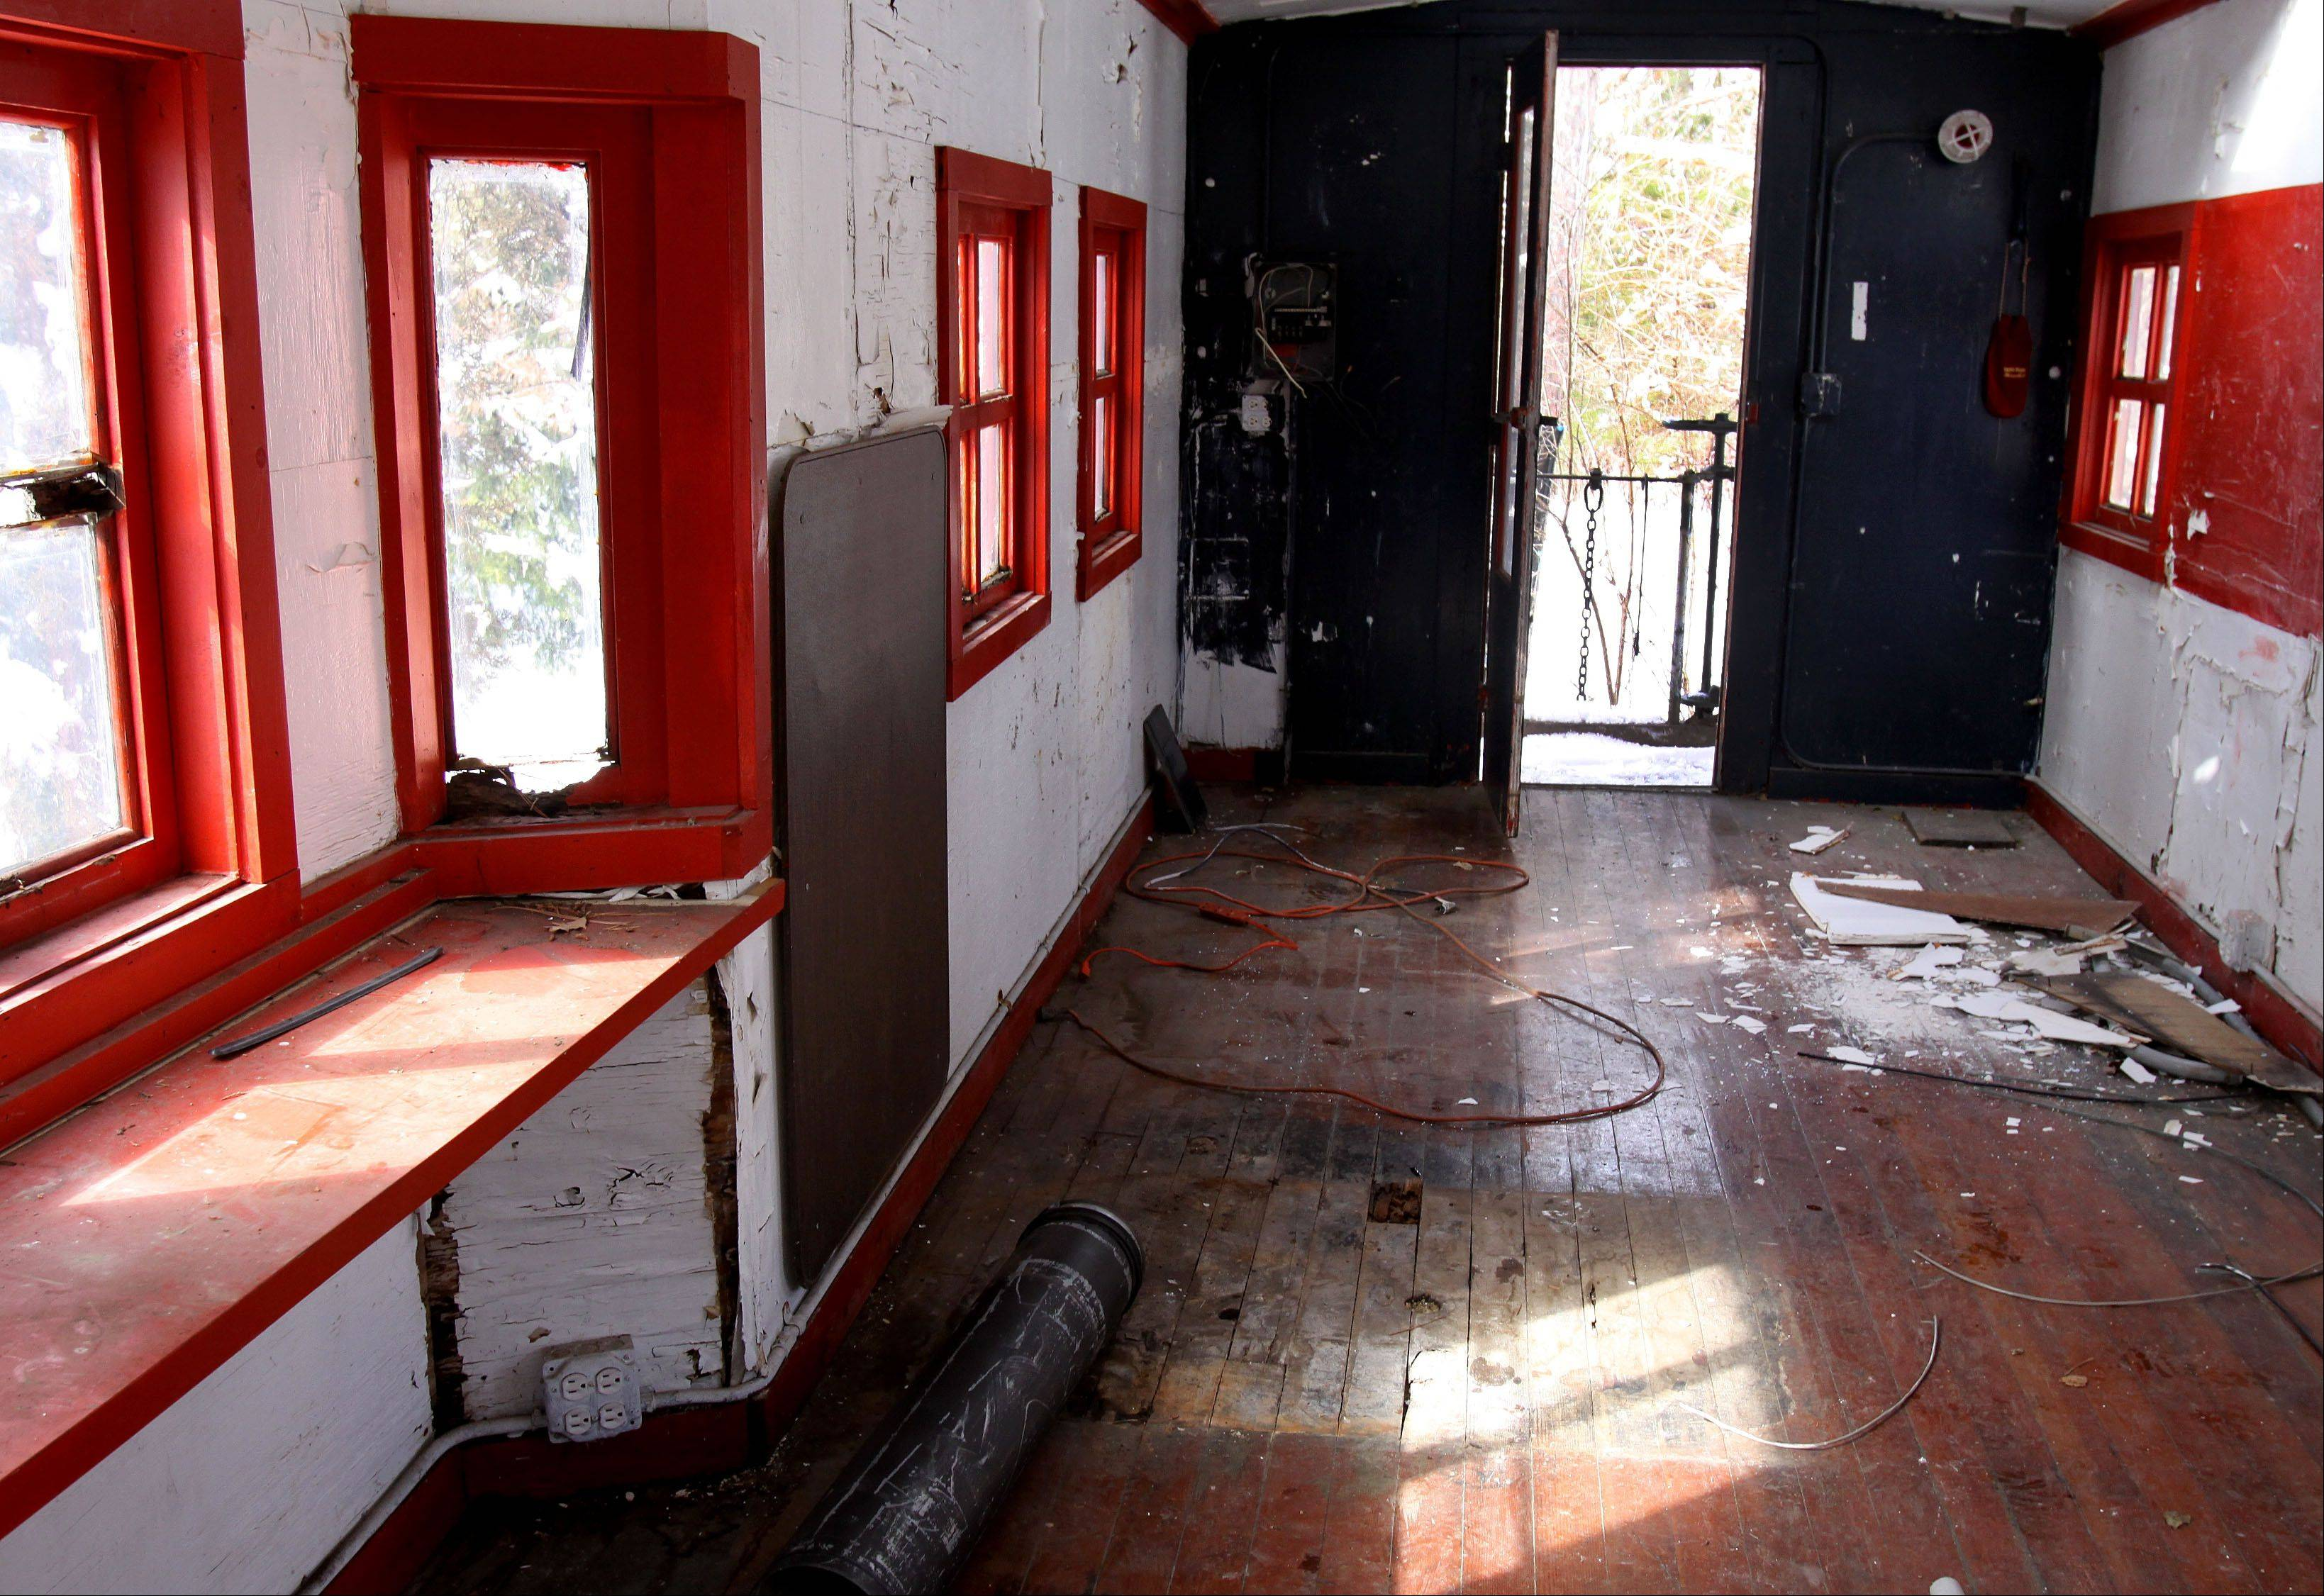 This is a look inside of a caboose that was moved Thursday from a backyard in Itasca to its new home next to the village's historic train depot.